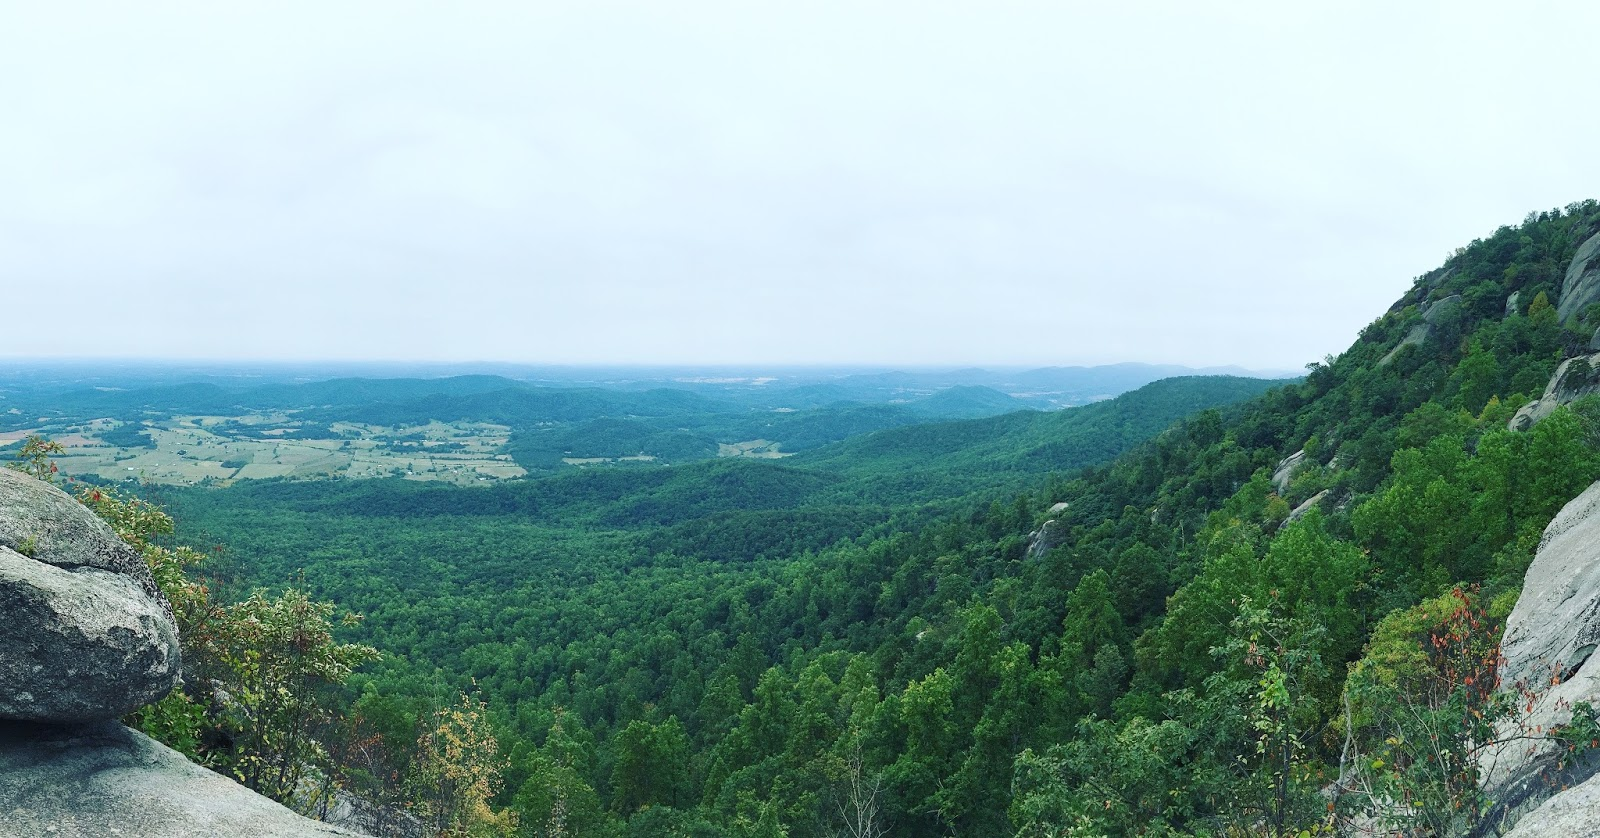 johns hopkins sais washington admissions blog lindsay what do i love outdoor adventure activities so my favorite weekend trips thus far have been to shenandoah national park the park is pristine so hiking camping